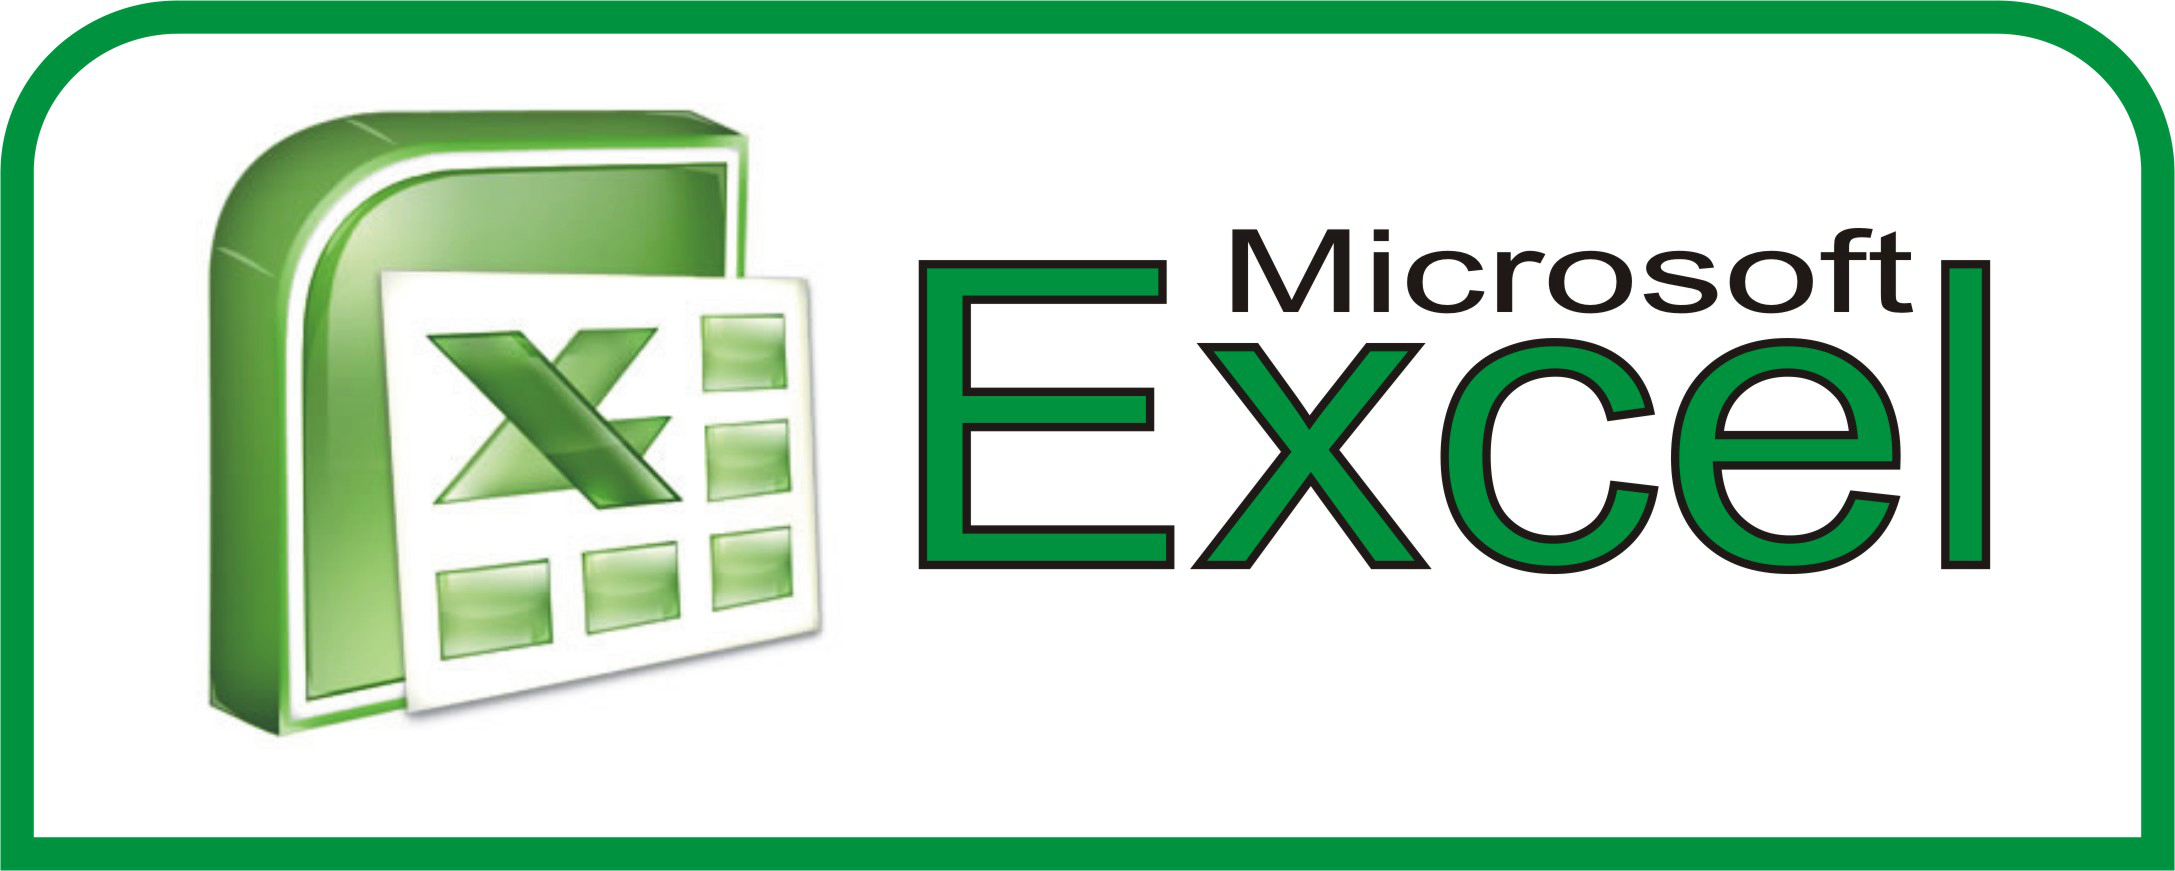 Ediblewildsus  Scenic  Excel Shortcuts You Probably Didnt Know About  Techdissected With Entrancing Excel Button In Cell Besides Scripting In Excel Furthermore How To Calculate A Date In Excel With Astonishing Export Active Directory To Excel Also Embedded Excel In Word In Addition Transition Plan Template Excel And Excel Budget Tracker As Well As Subtracting Date And Time In Excel Additionally Outline Excel From Techdissectedcom With Ediblewildsus  Entrancing  Excel Shortcuts You Probably Didnt Know About  Techdissected With Astonishing Excel Button In Cell Besides Scripting In Excel Furthermore How To Calculate A Date In Excel And Scenic Export Active Directory To Excel Also Embedded Excel In Word In Addition Transition Plan Template Excel From Techdissectedcom